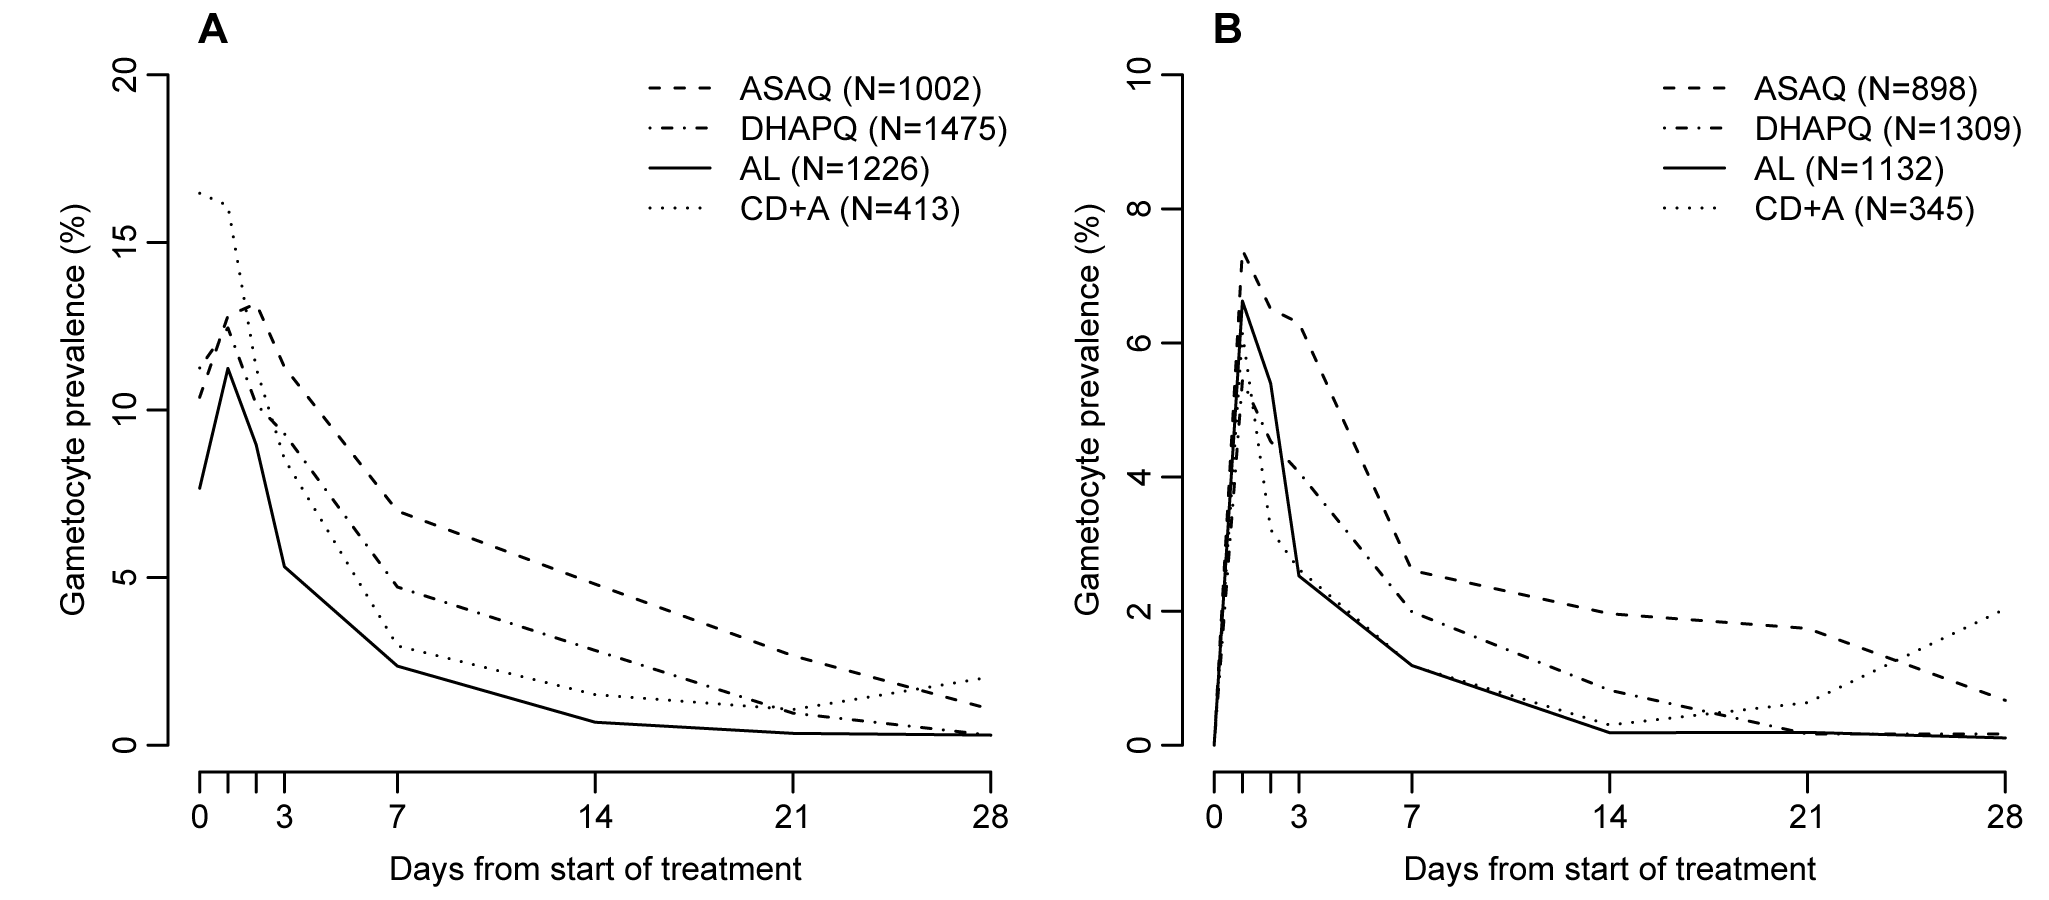 Gametocyte prevalence by treatment and day of follow-up.